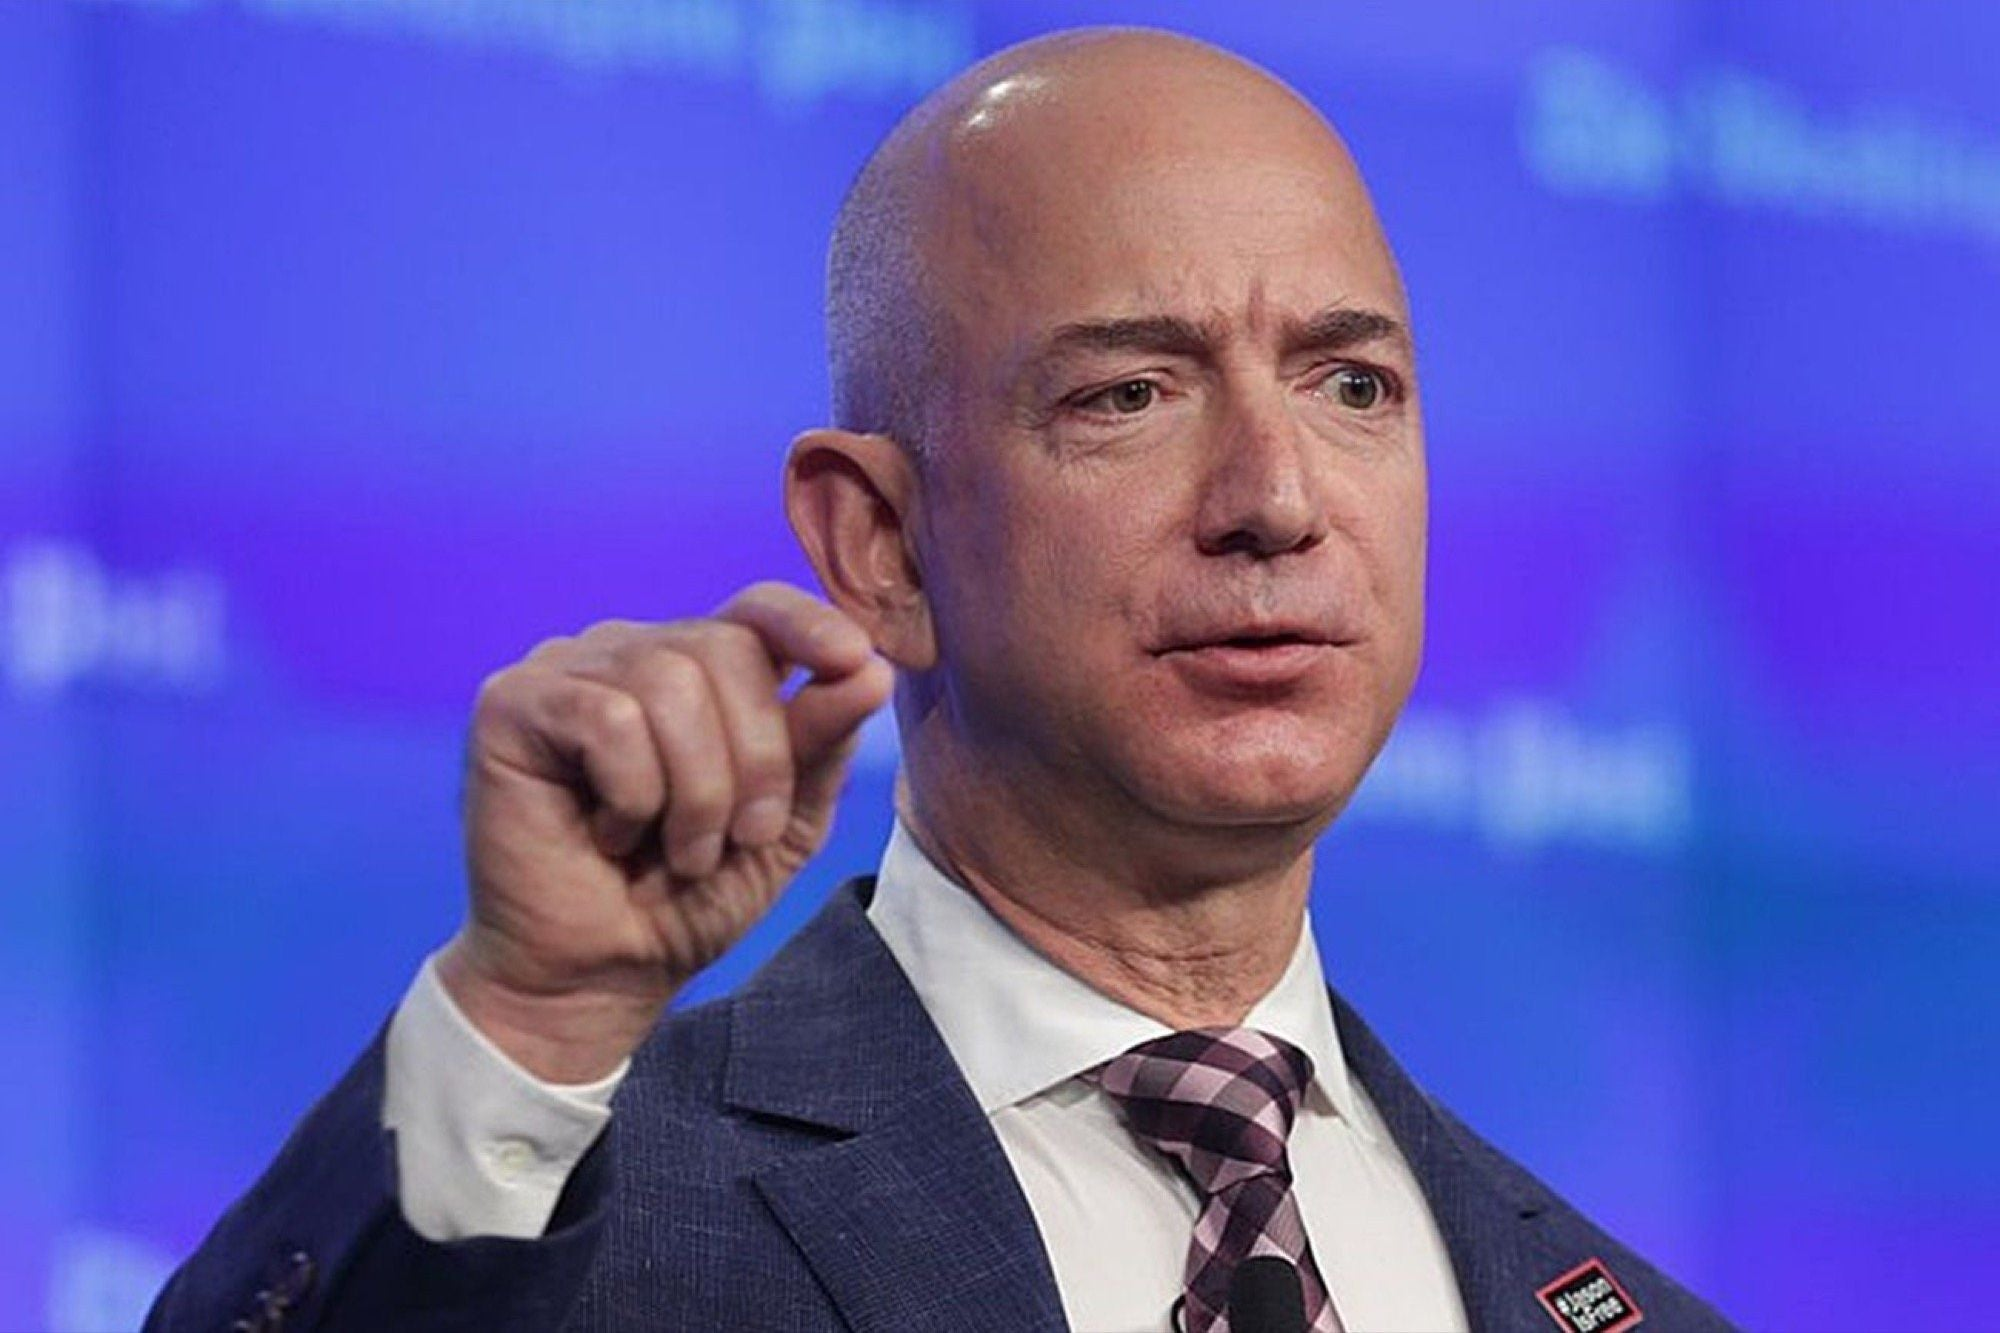 The 3 Things That Made Jeff Bezos The Richest Man In The World And